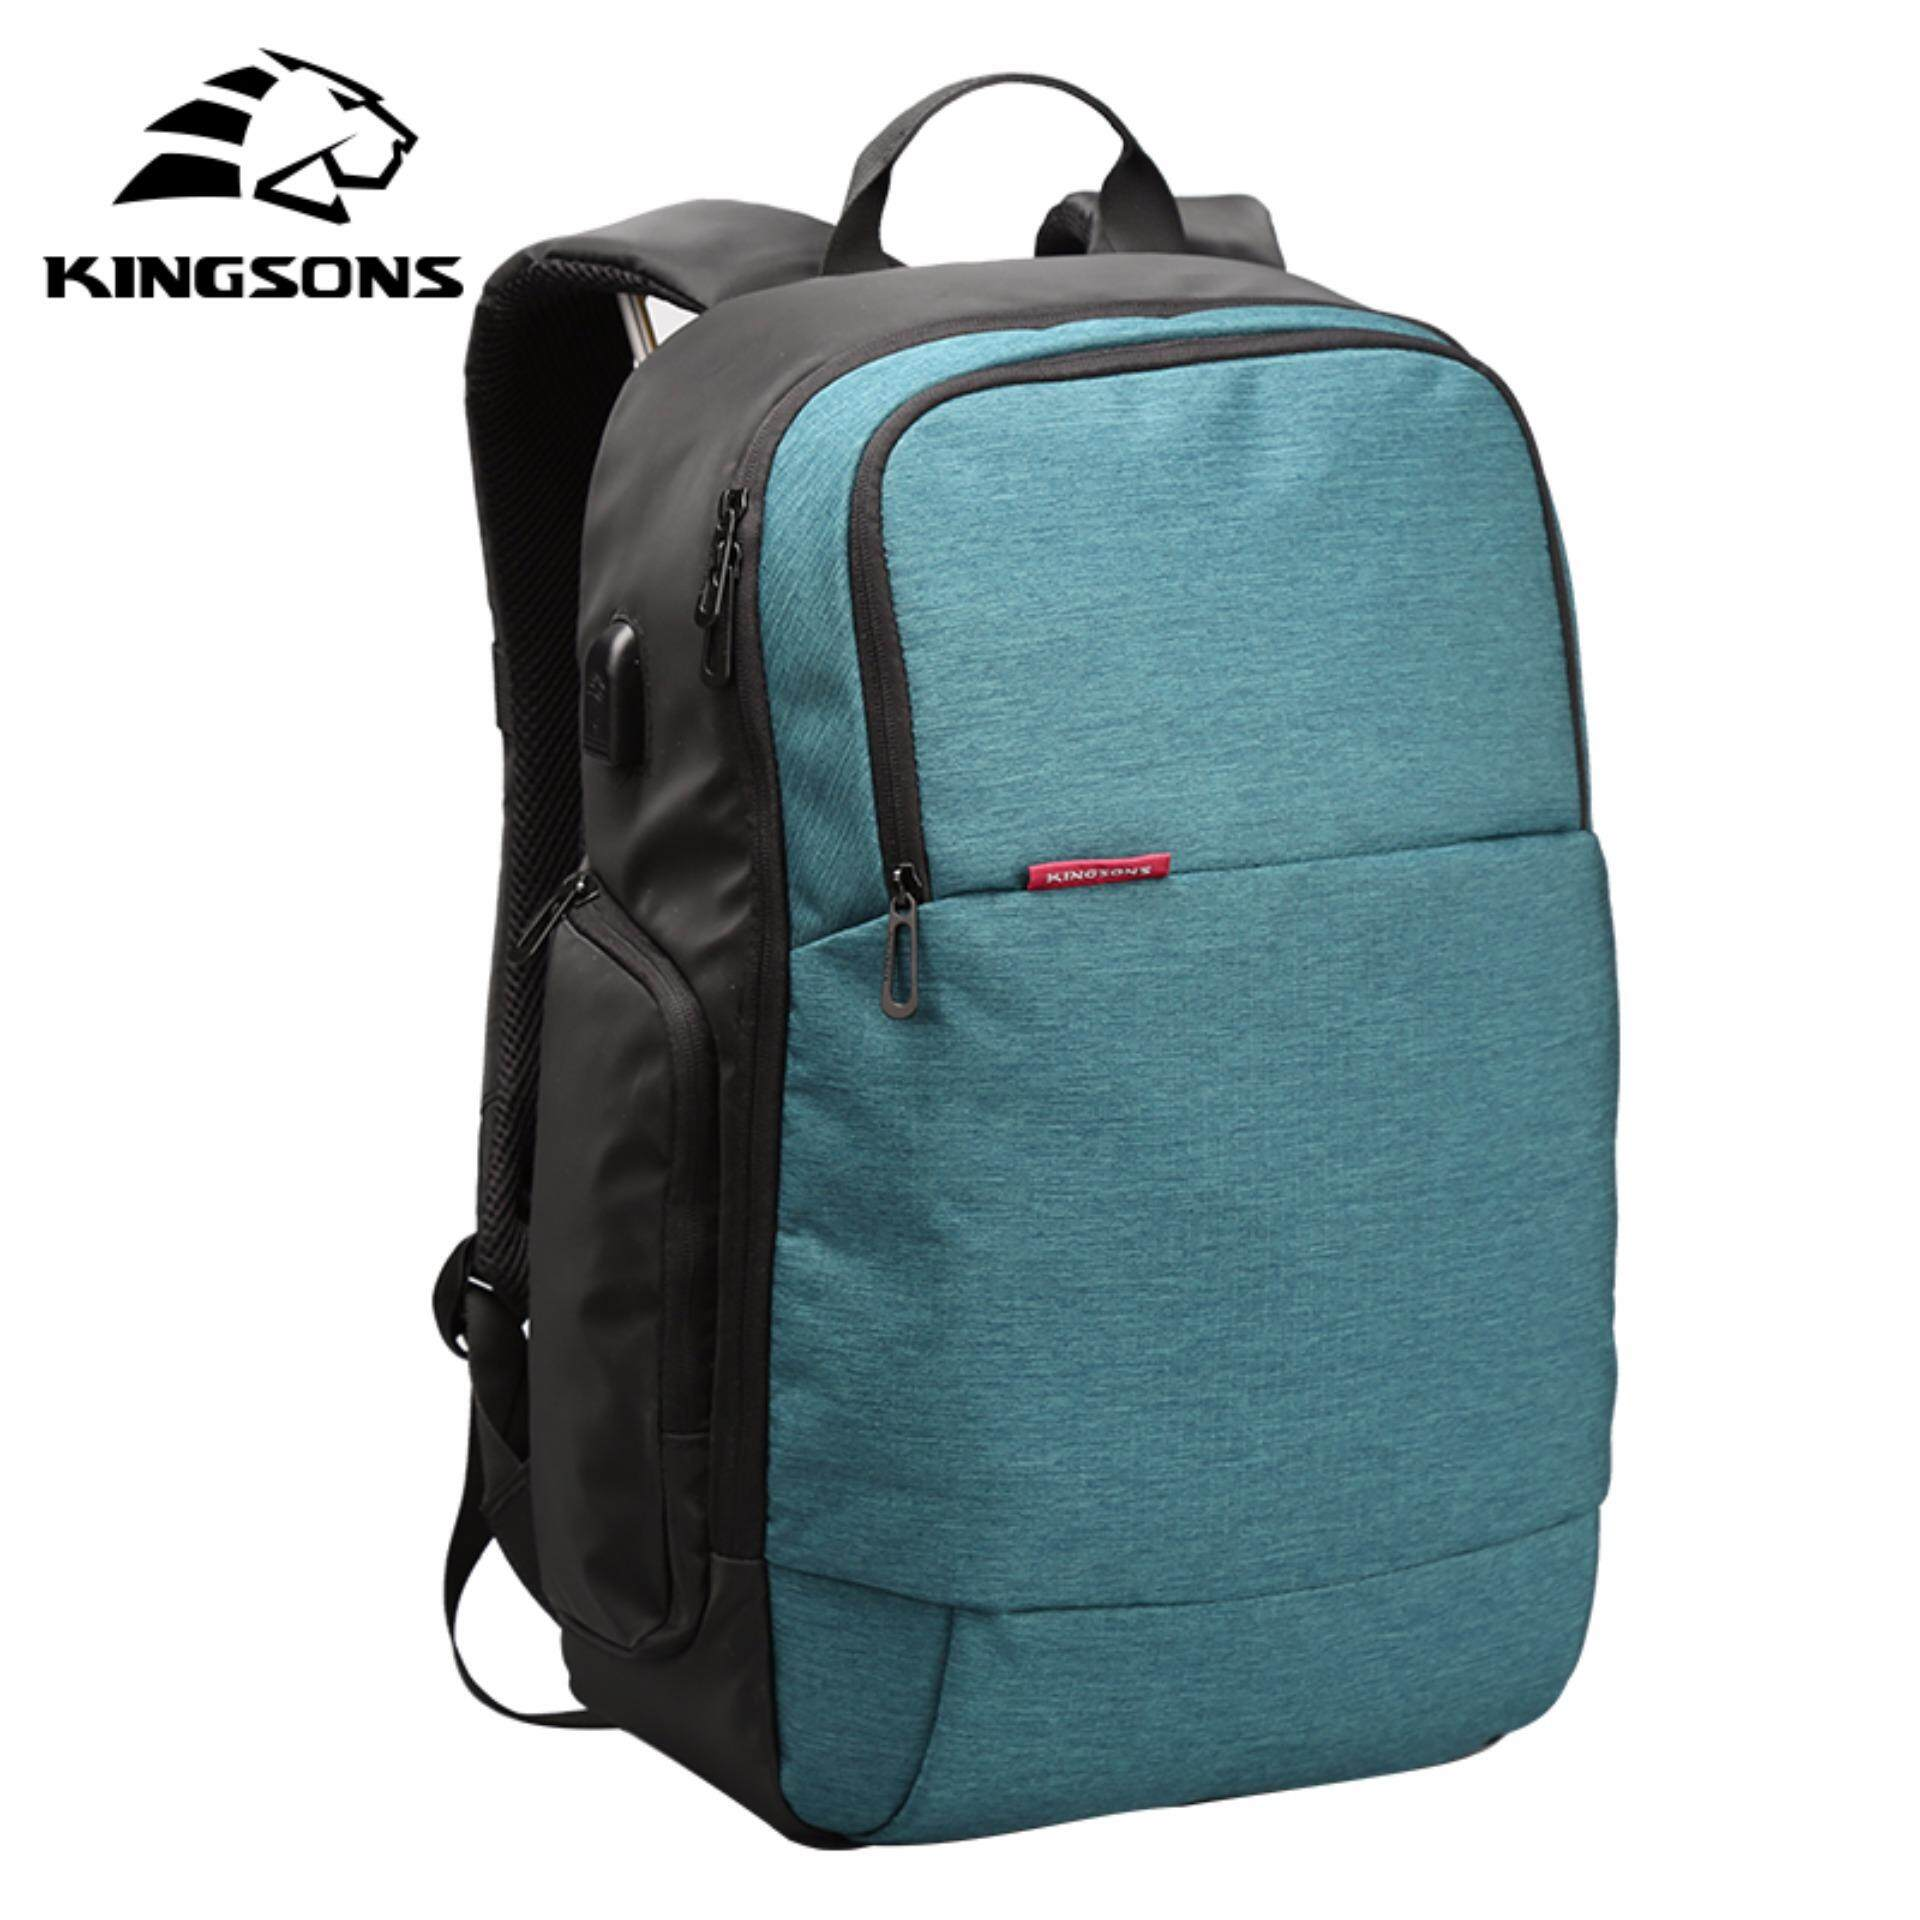 09800aad3f85 Kingsons External USB Charge Laptop Backpack Anti-theft Notebook Computer  Bag 15.6 inch for Business